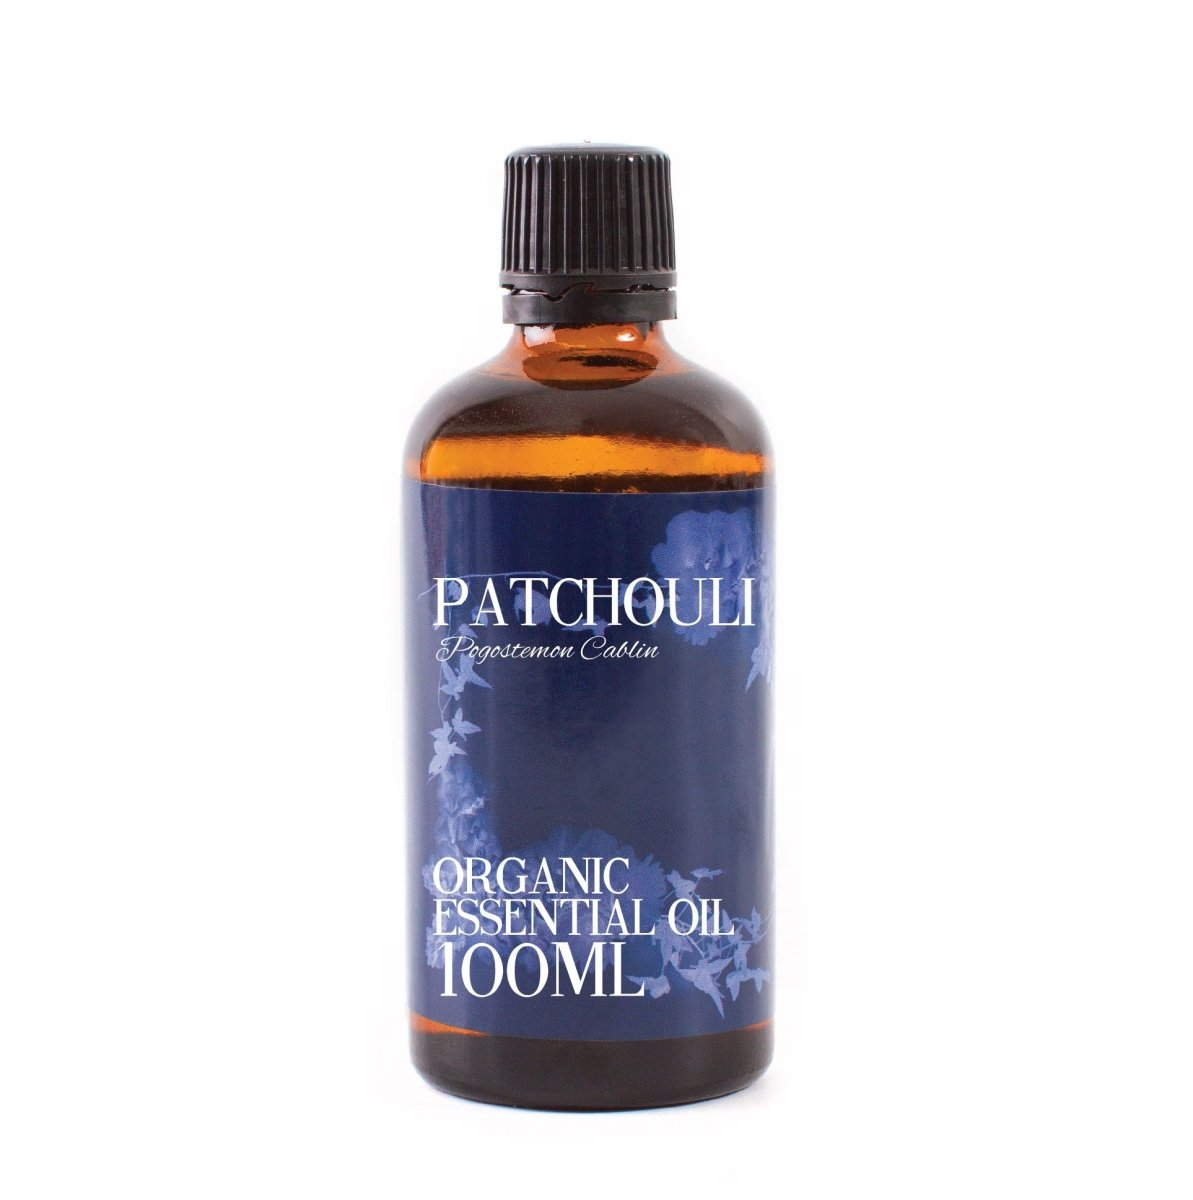 Patchouli Organic Essential Oil - Mystic Moments UK